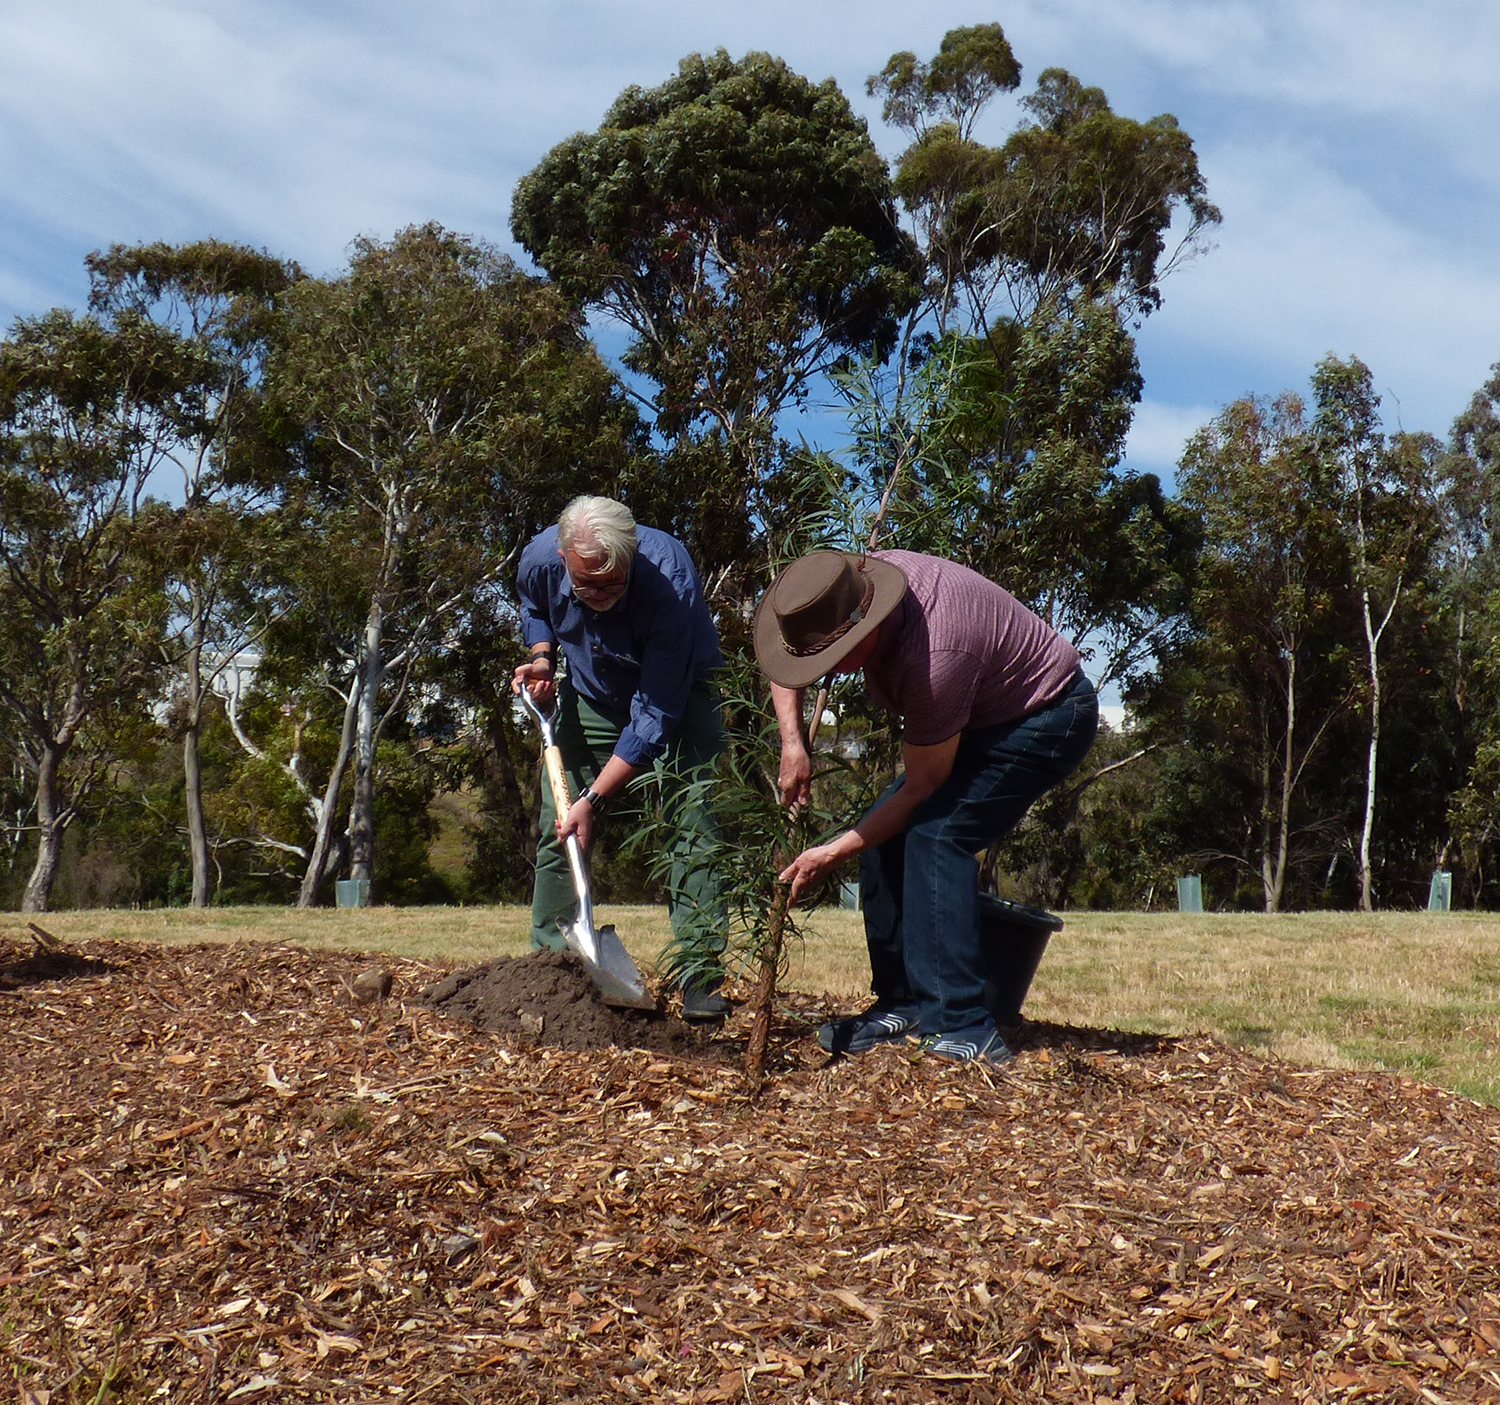 Greening the west 1 millionth tree being planted in October 2018